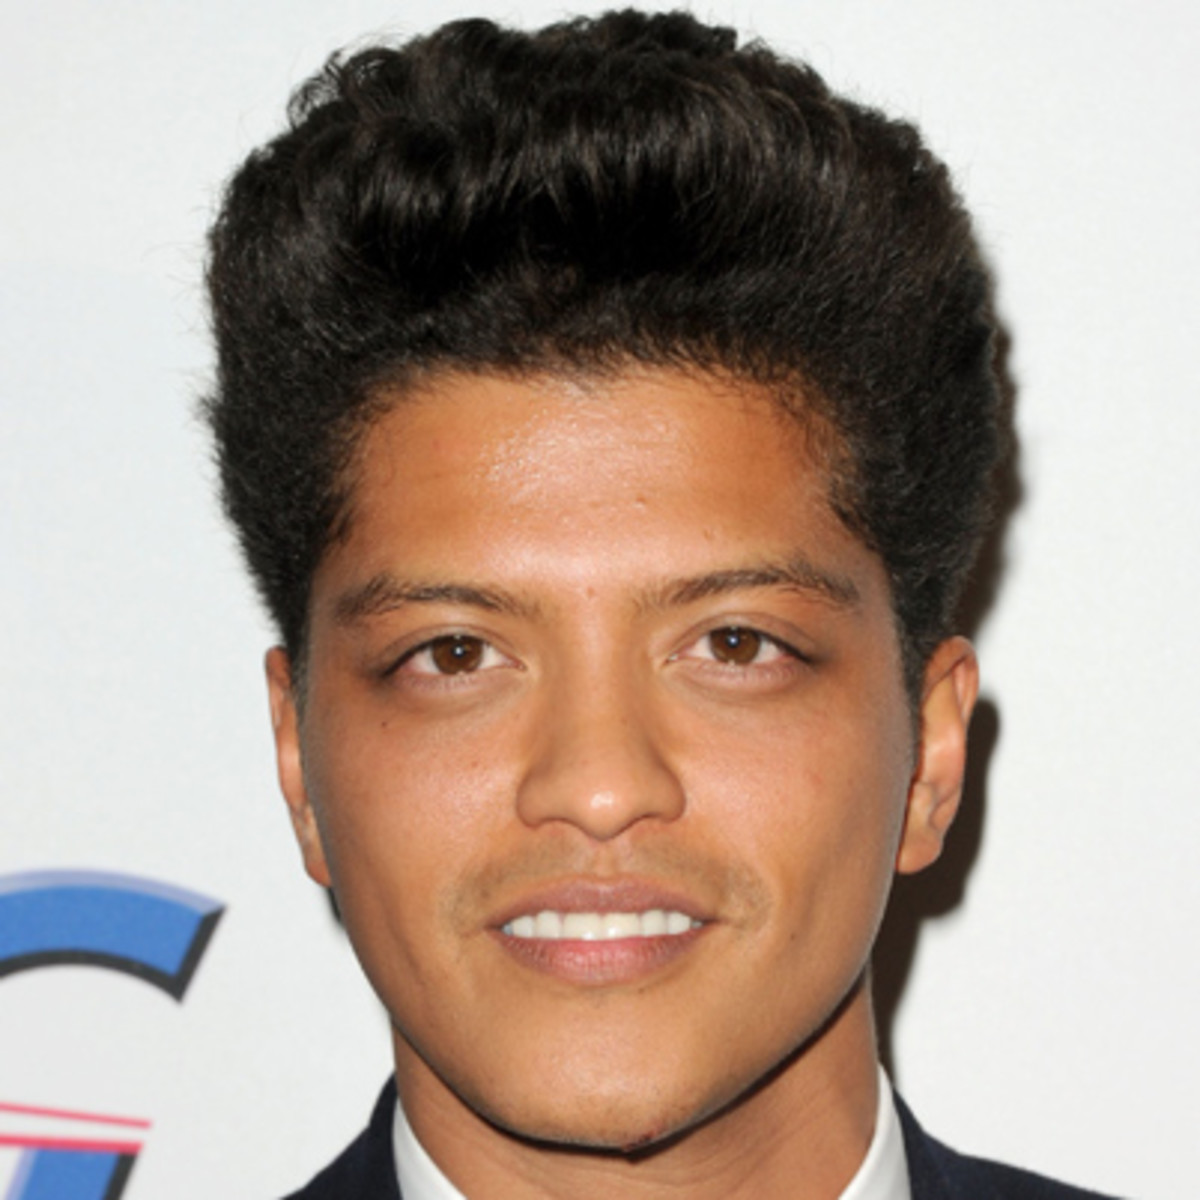 bruno mars songwriter singer biography